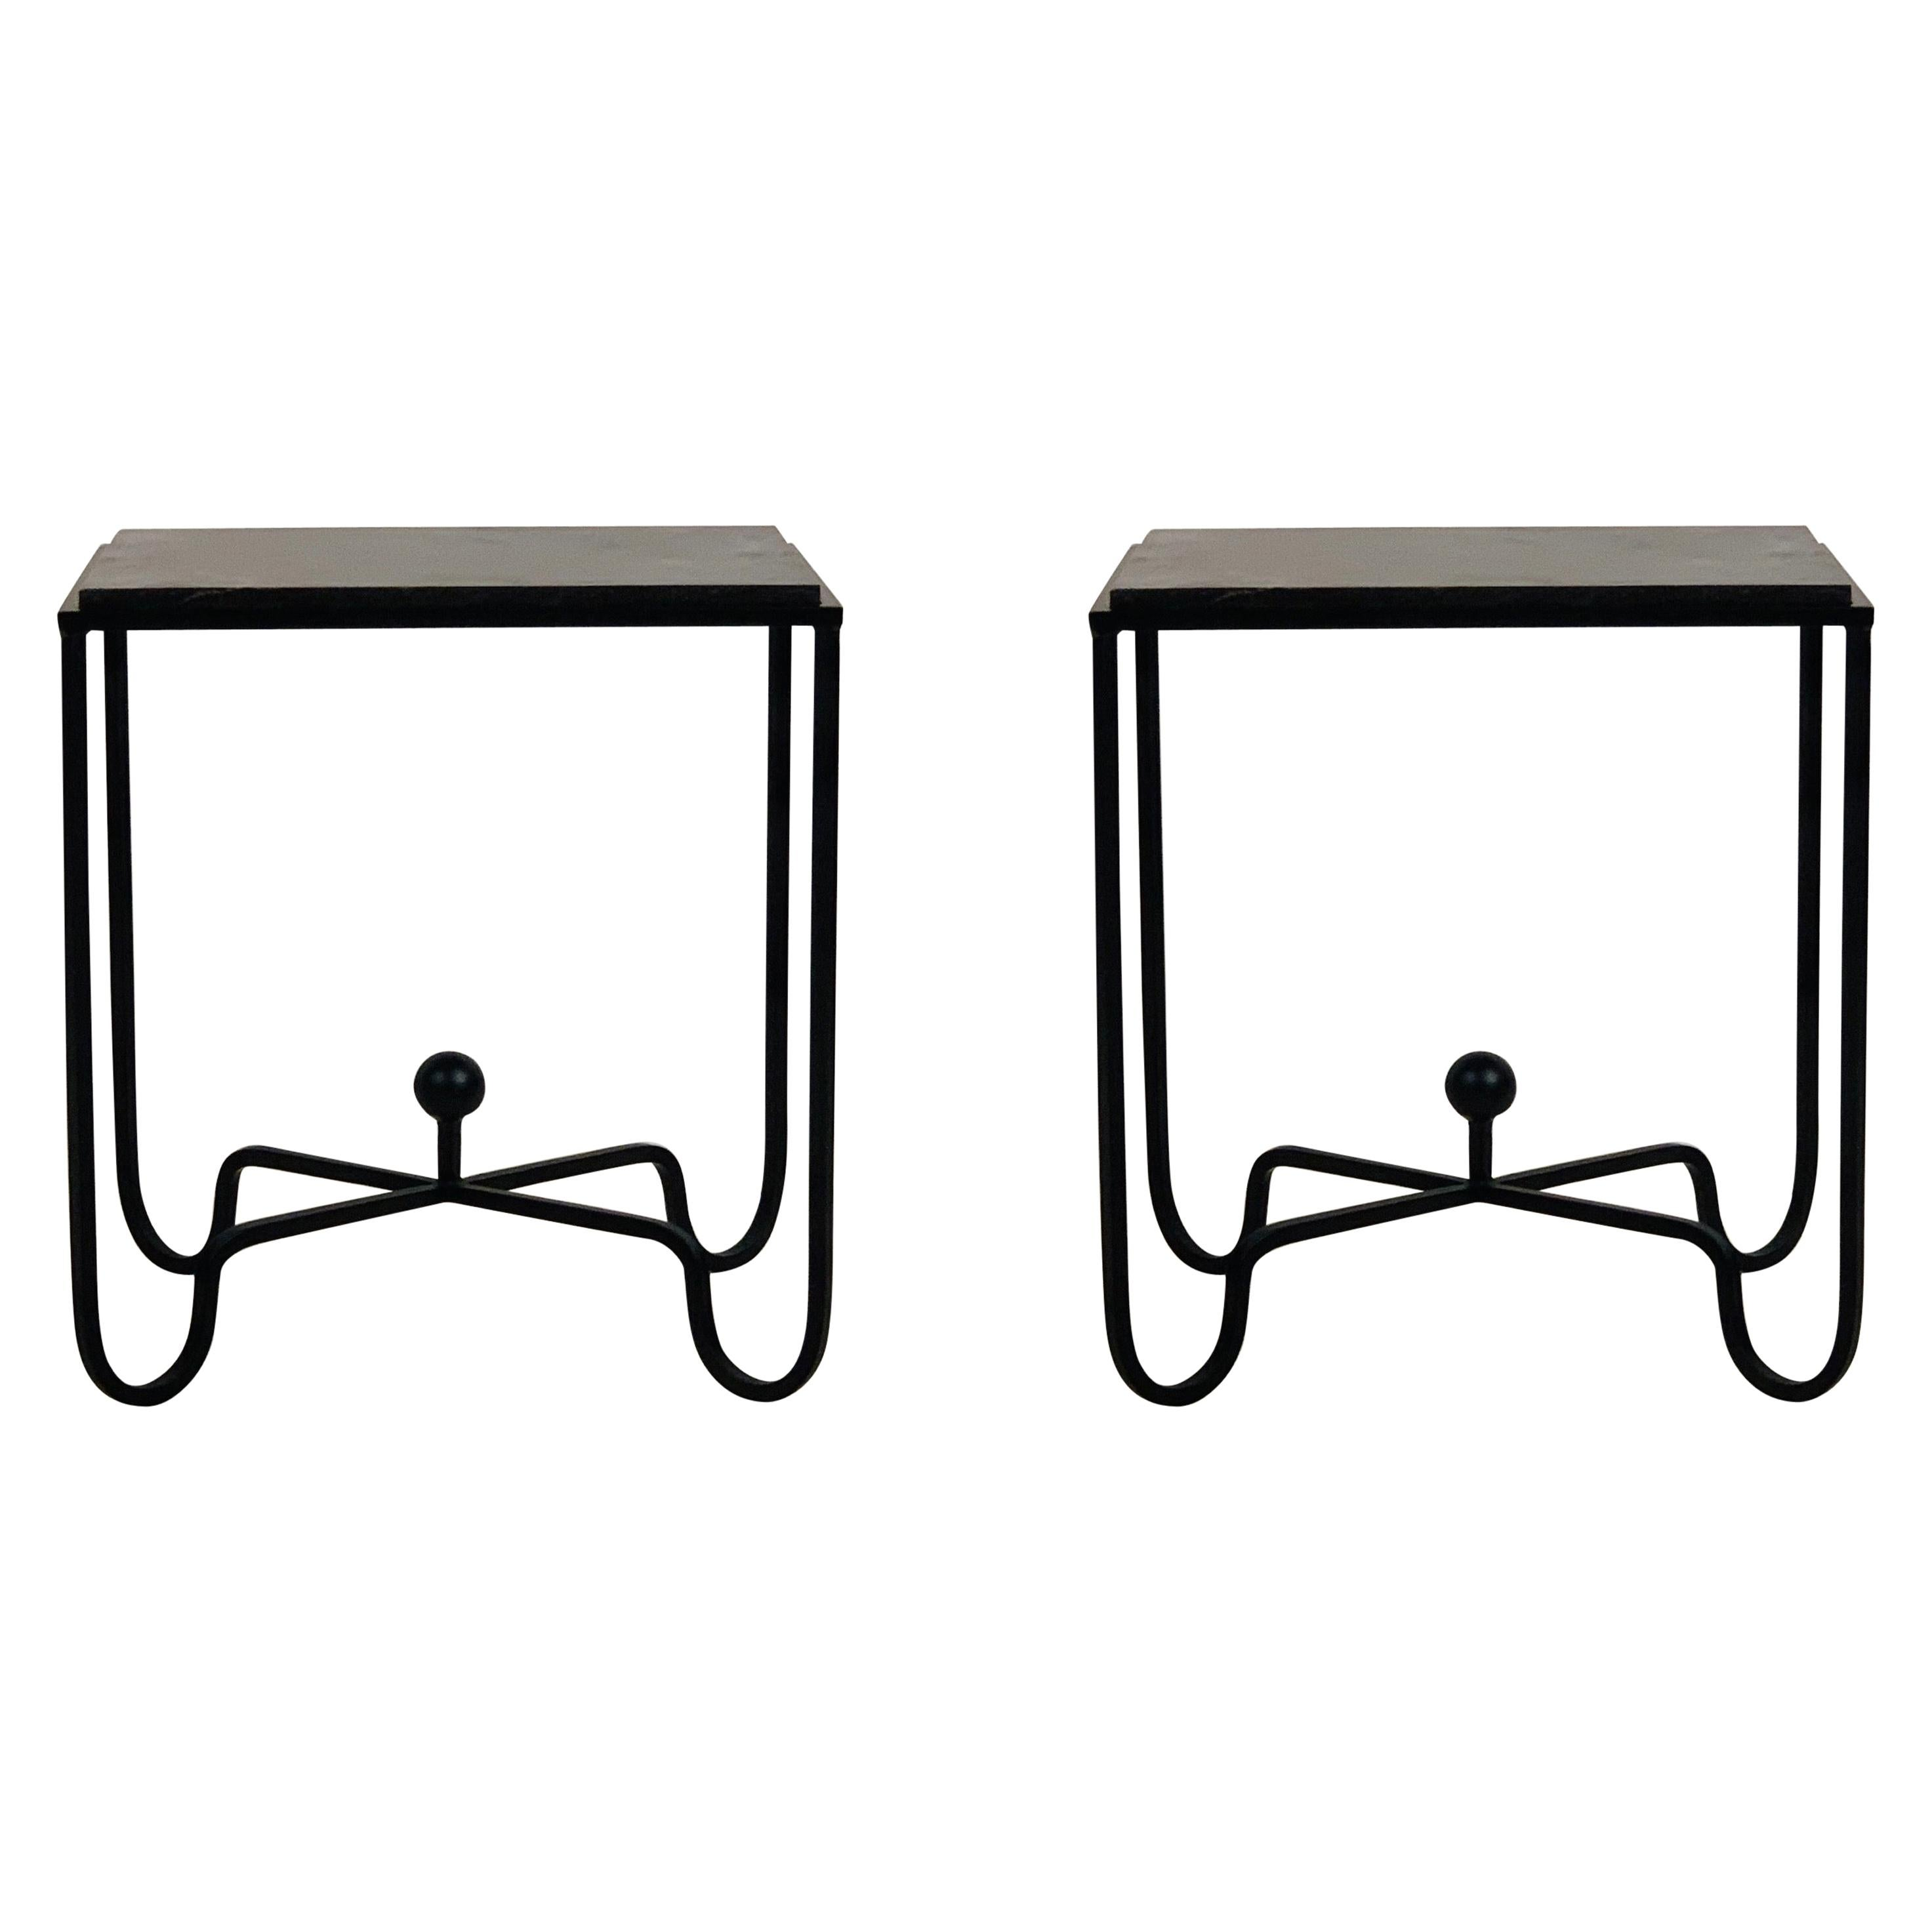 Pair of Chic 'Entretoise' Black Limestone Night Stands by Design Frères